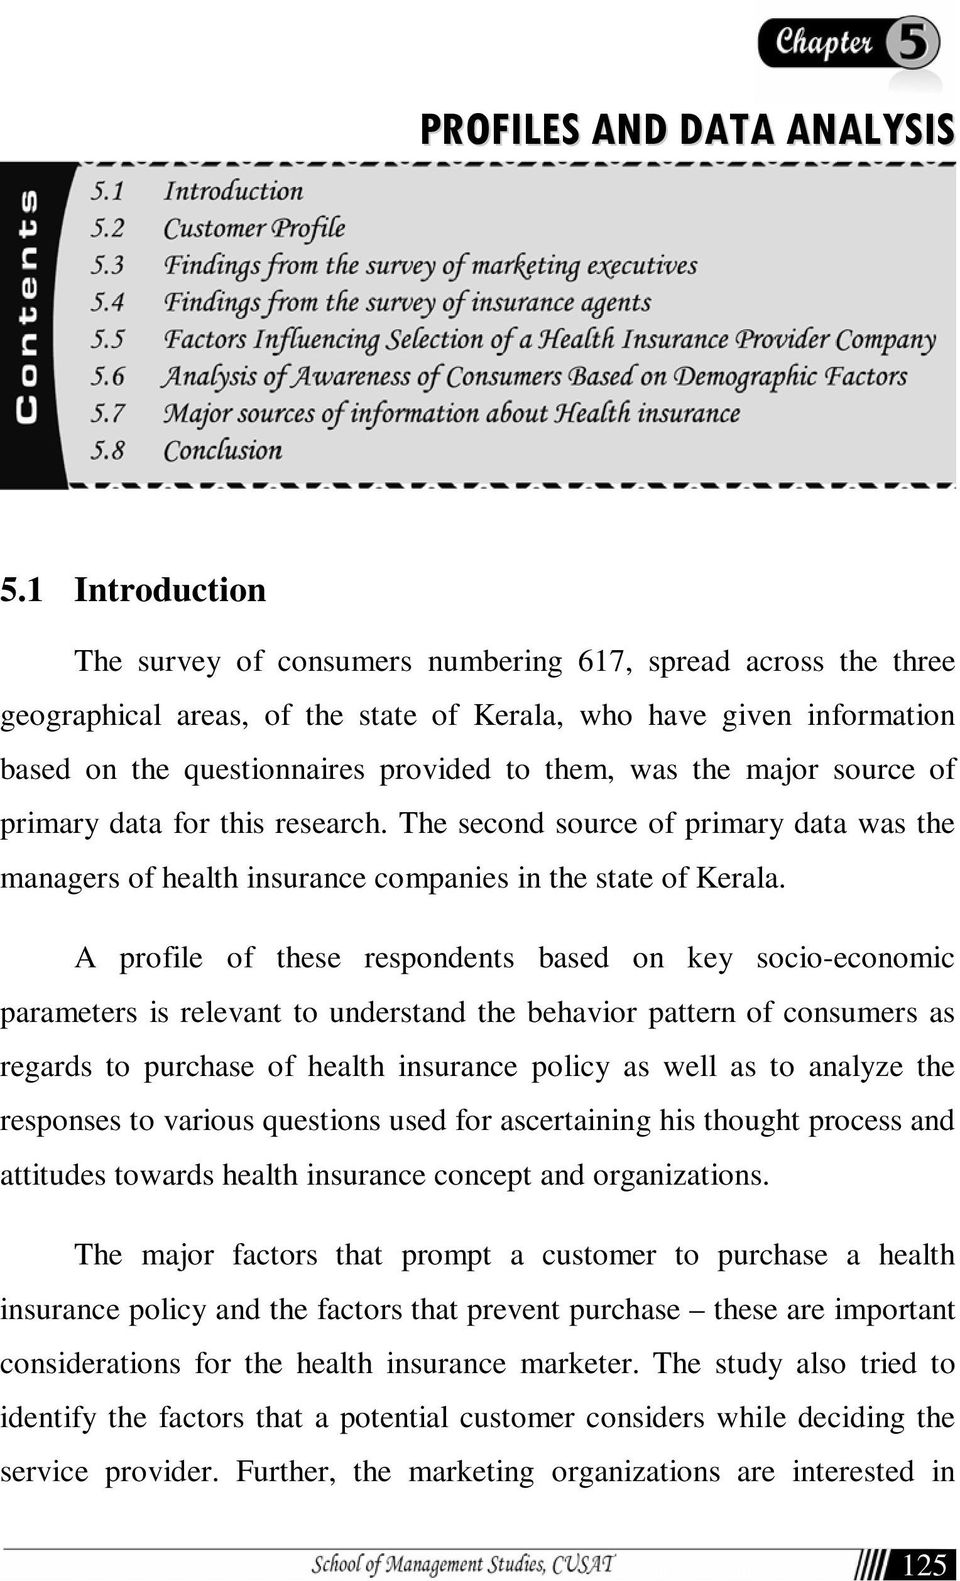 the major source of primary data for this research. The second source of primary data was the managers of health insurance companies in the state of Kerala.